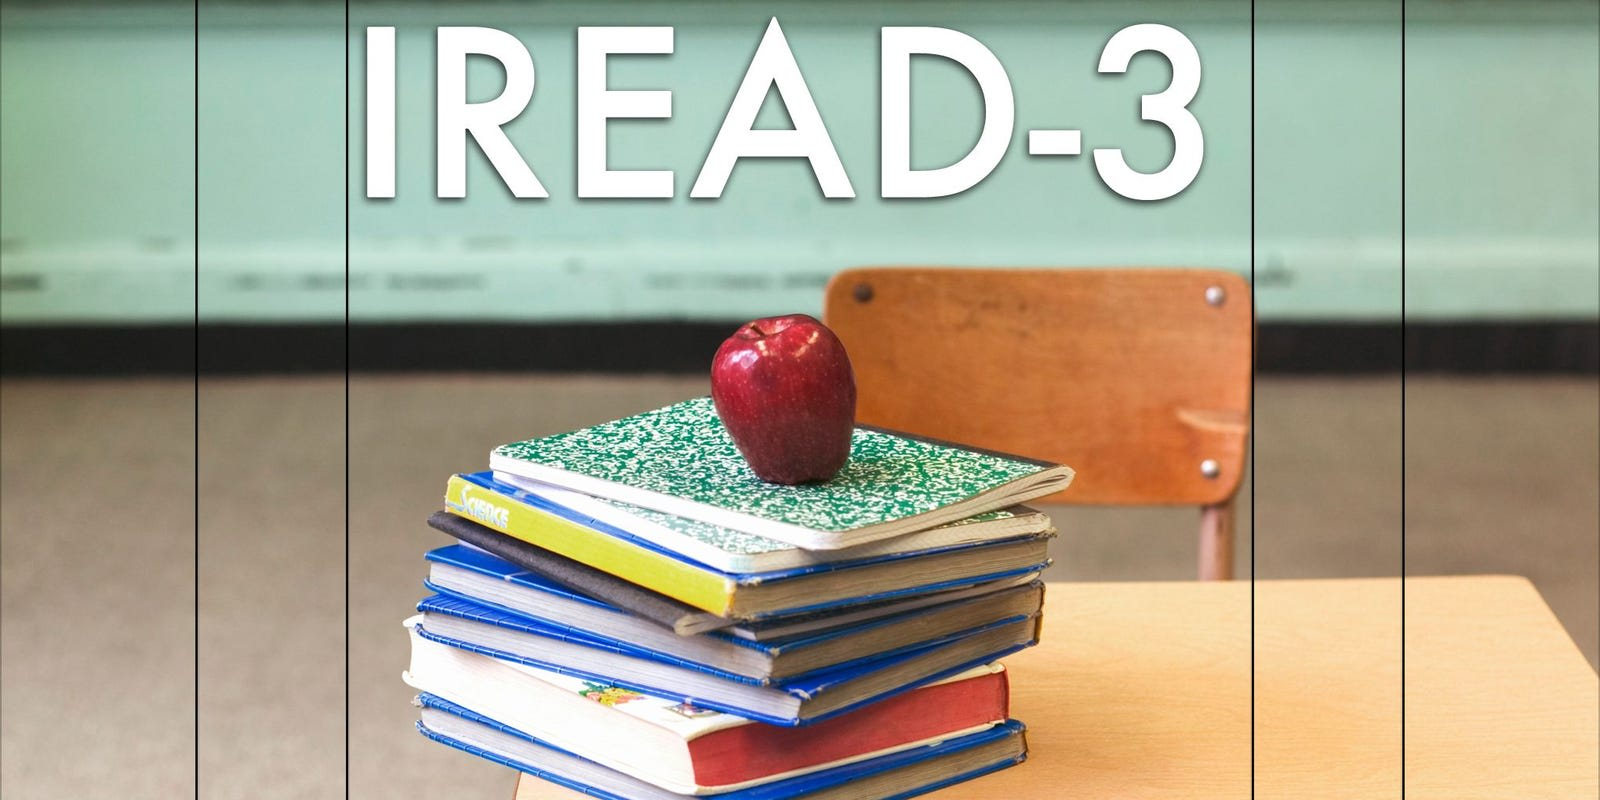 Image of books stacked with apple on top with IREAD-3 written across the top in white.